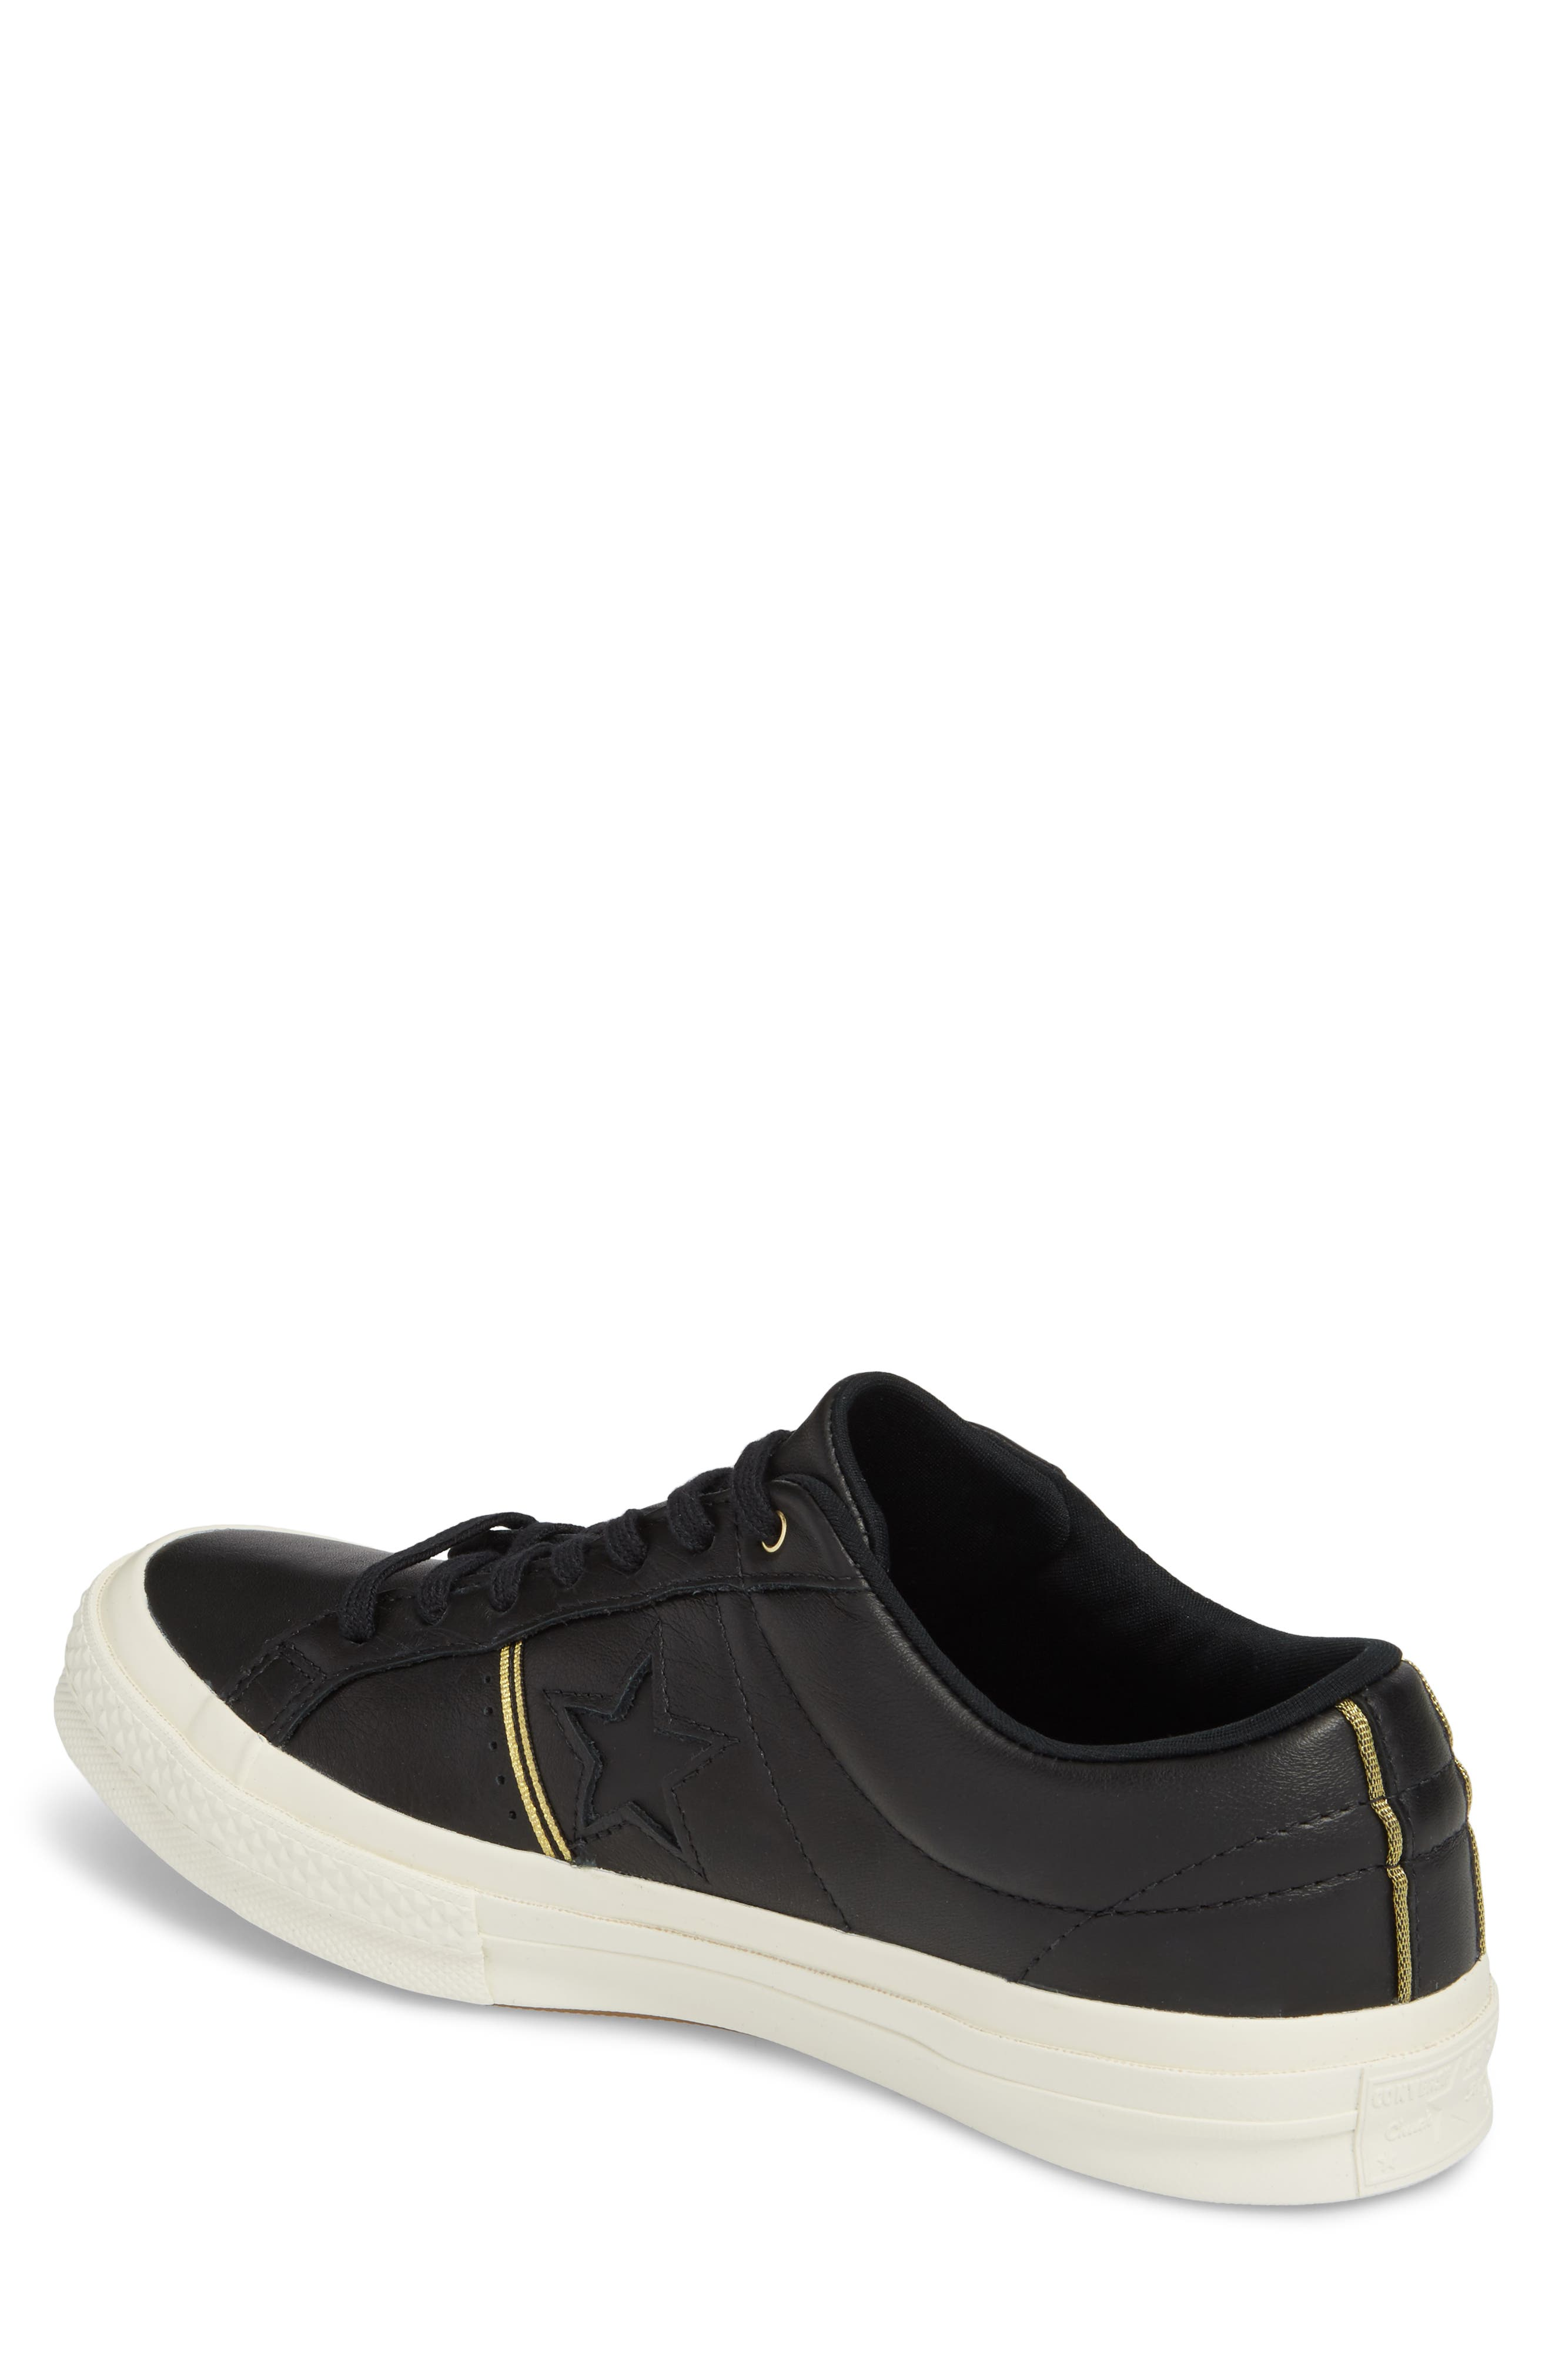 Chuck Taylor<sup>®</sup> All Star<sup>®</sup> One-Star Sneaker,                             Alternate thumbnail 2, color,                             001